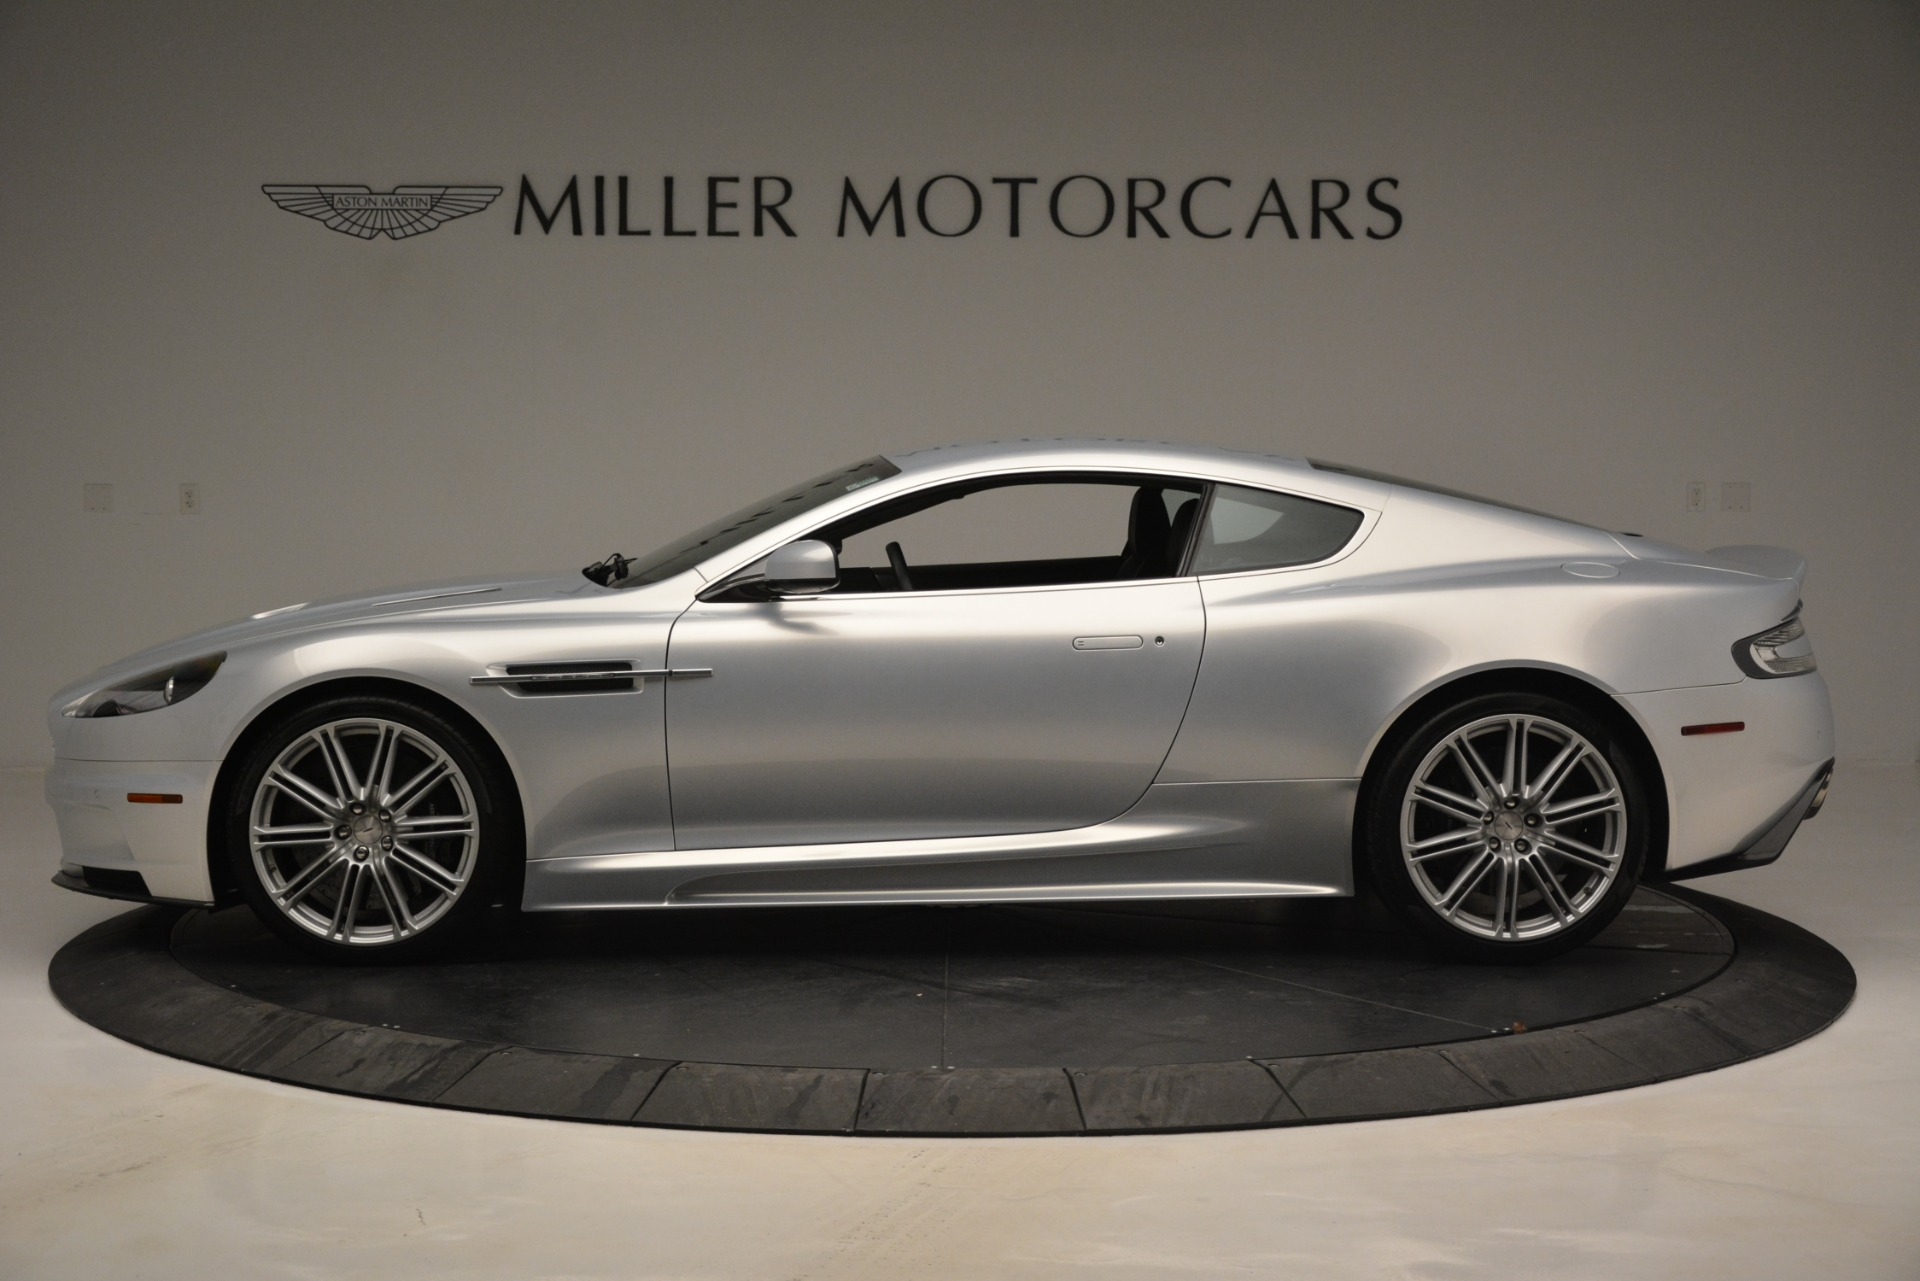 Used 2009 Aston Martin DBS Coupe For Sale In Westport, CT 3033_p3